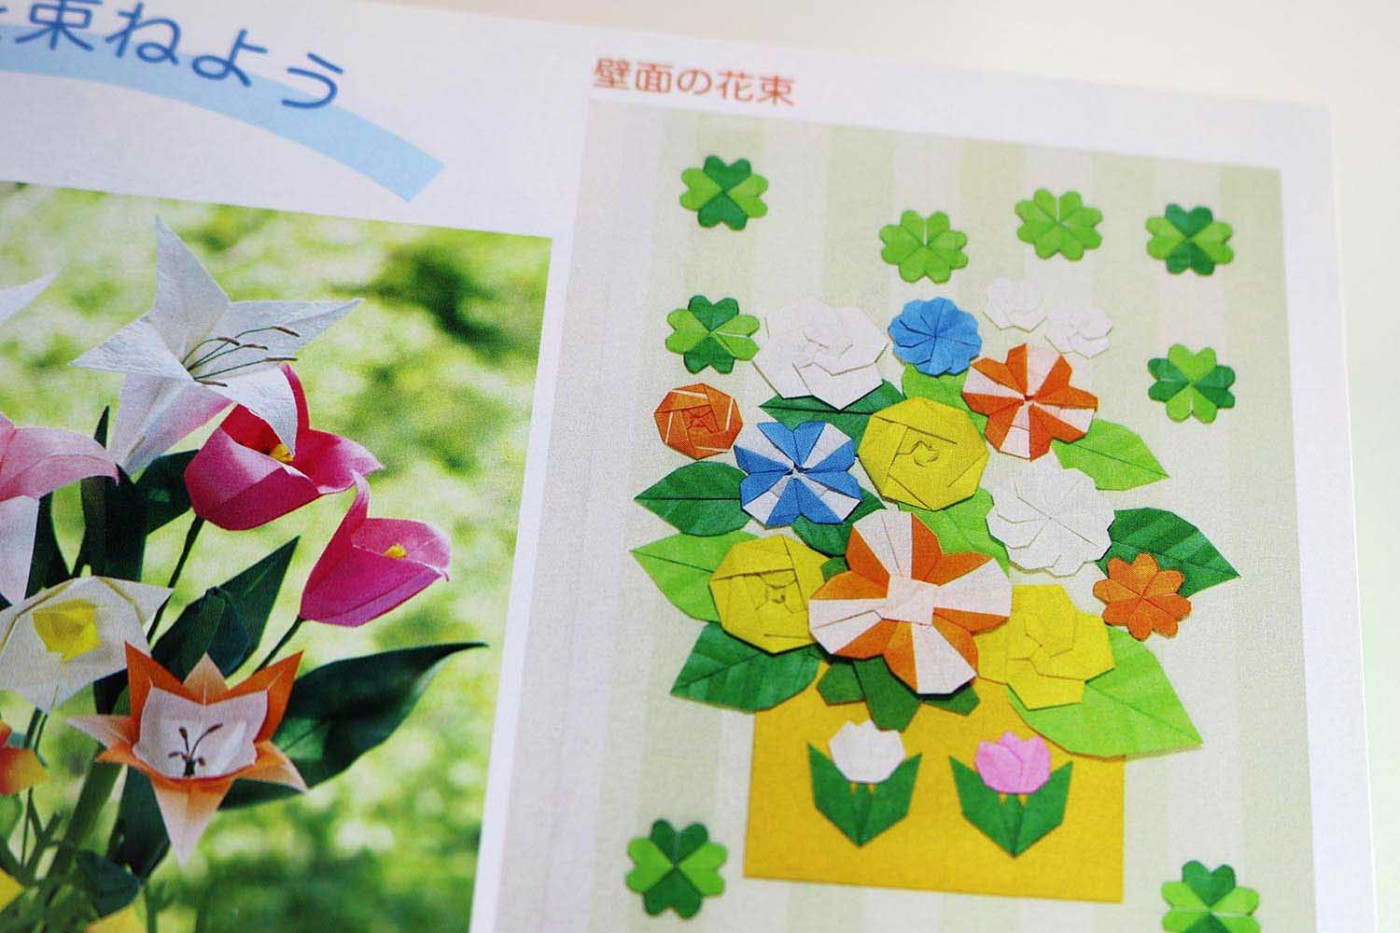 How To Make An Origami Lotus Flower - Folding Instructions ... | 933x1400